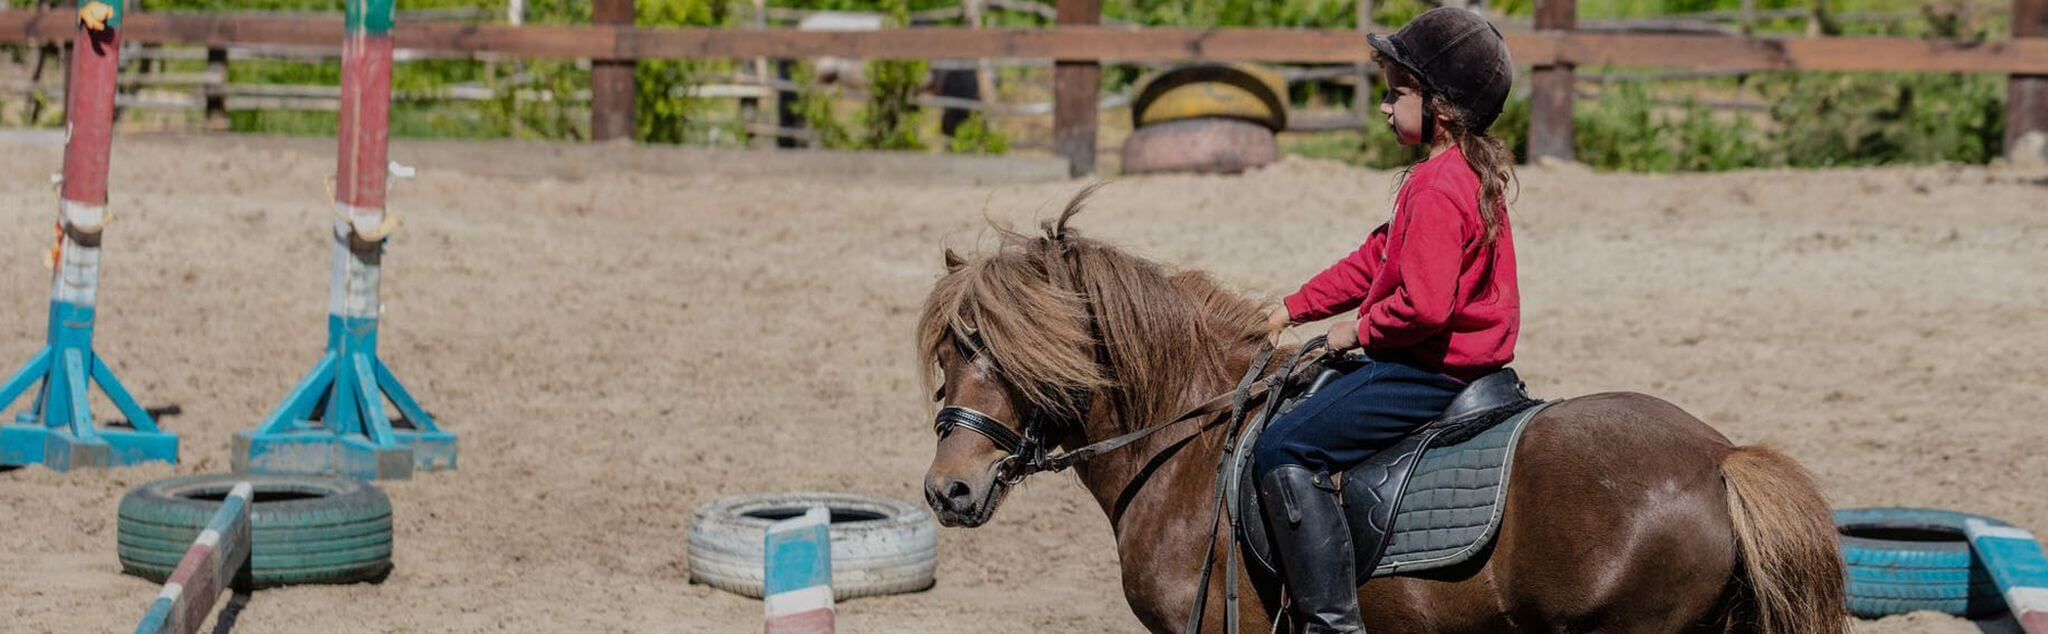 Horse Riding Lessons in Burgos